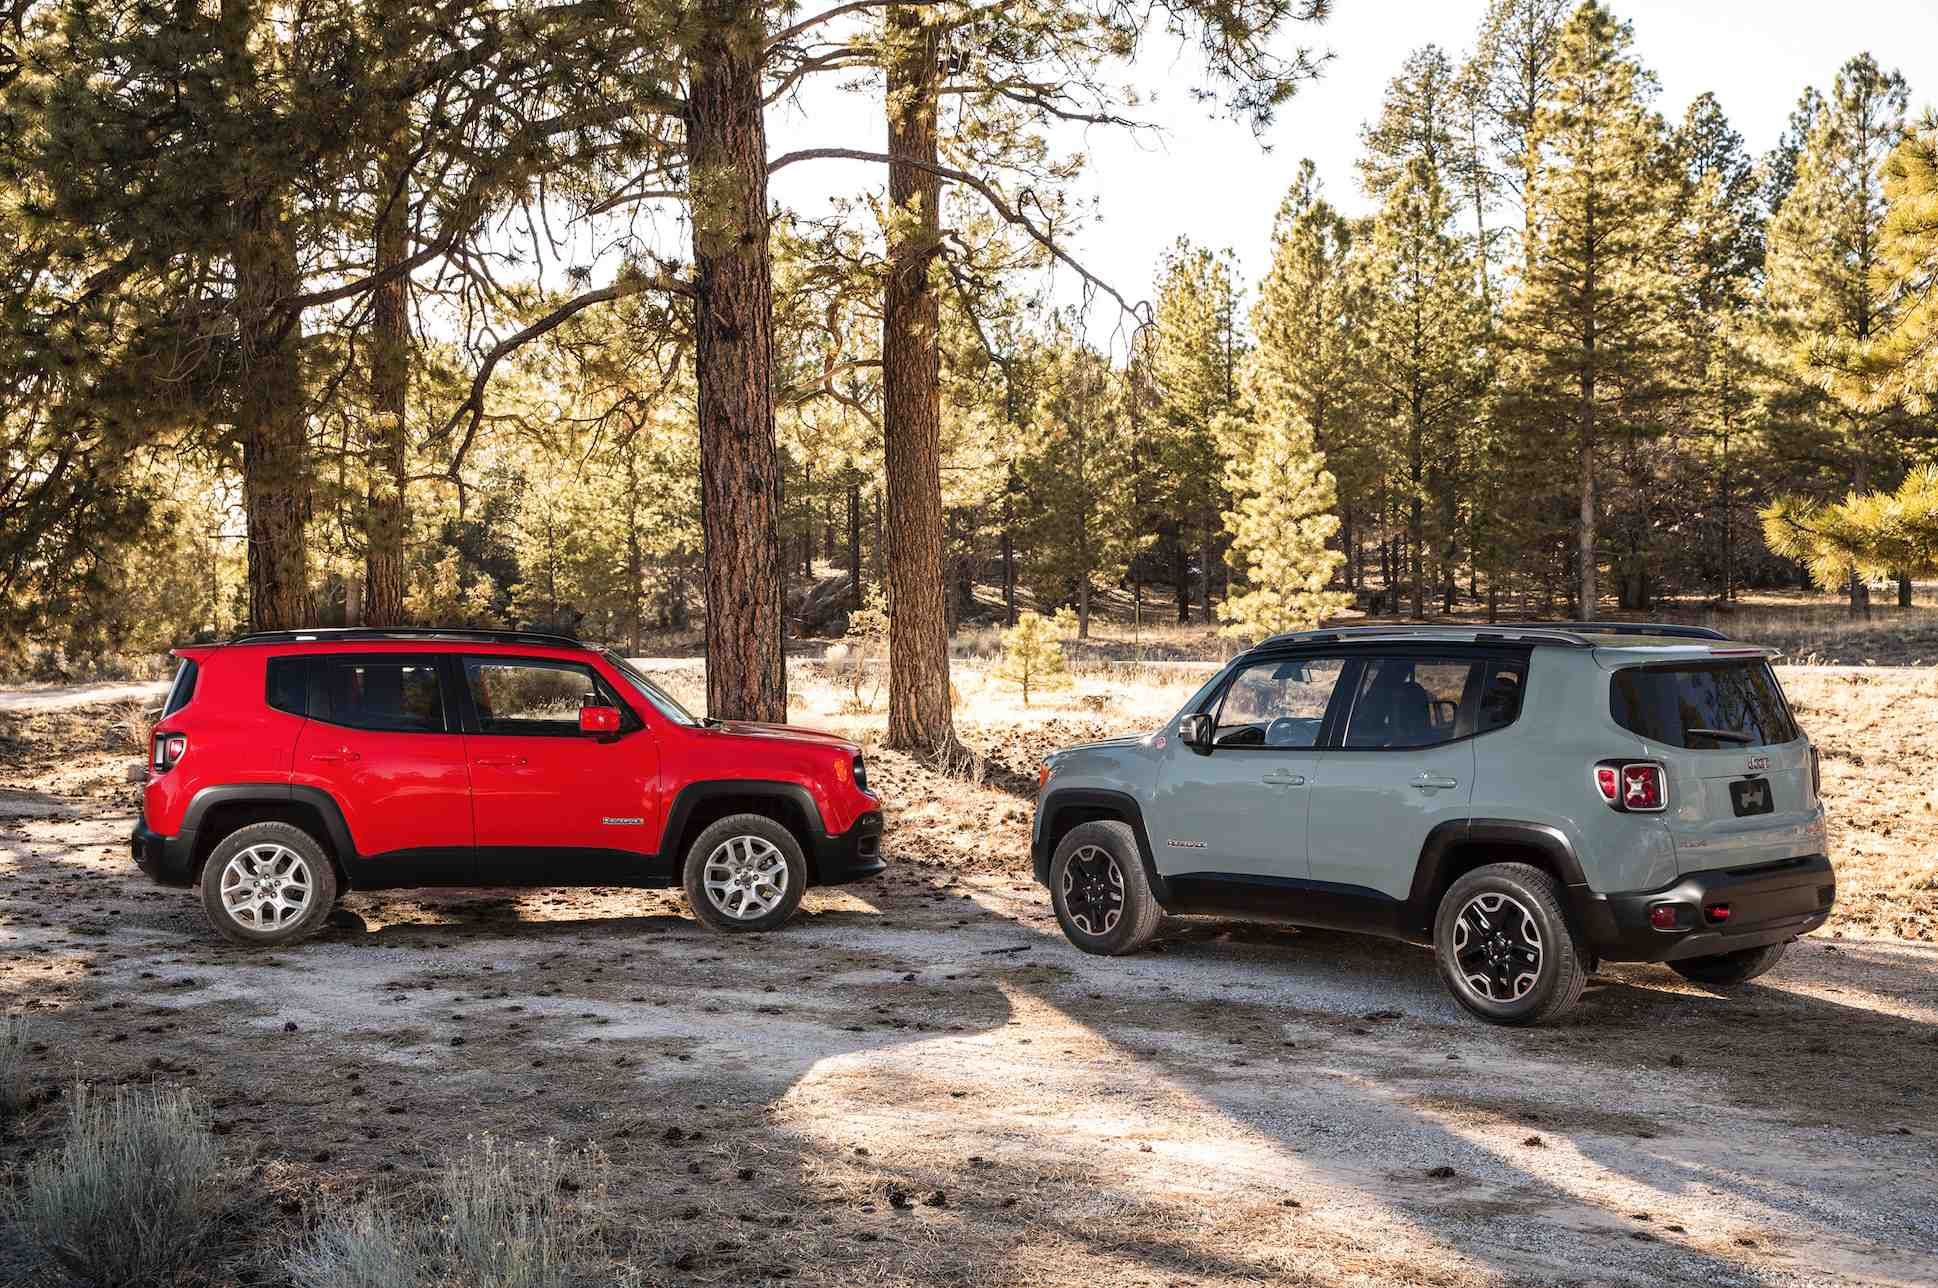 Little Overlanders Relevant or Ridiculous? Other ExPo